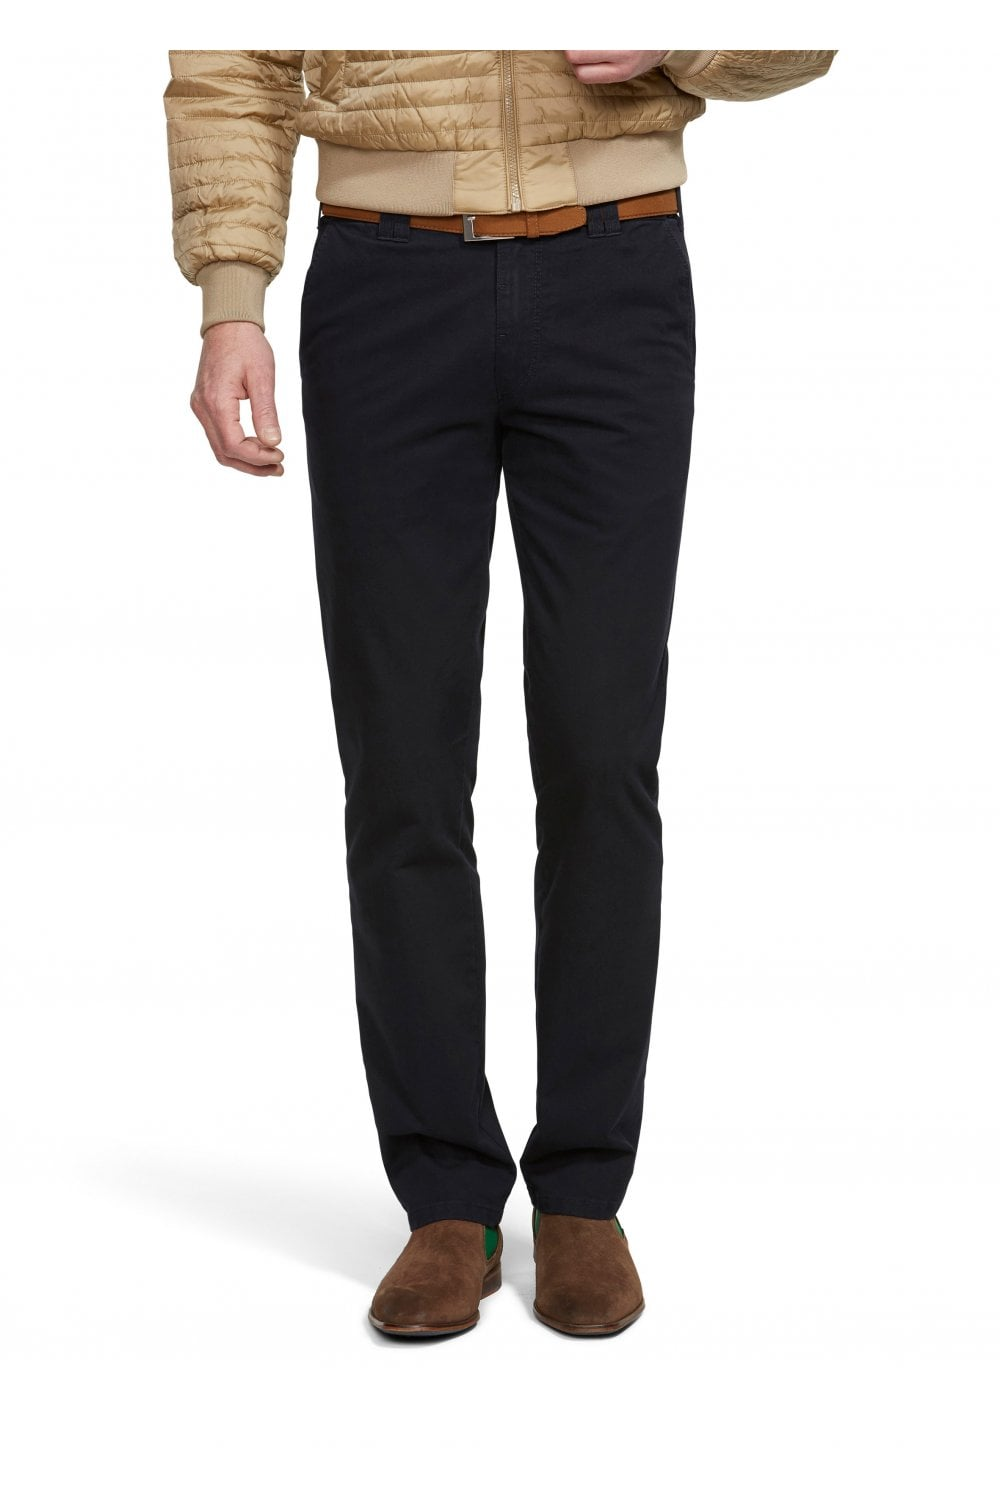 Meyer Trousers | Meyer Jeans | Meyer Chinos | Potters of Buxton